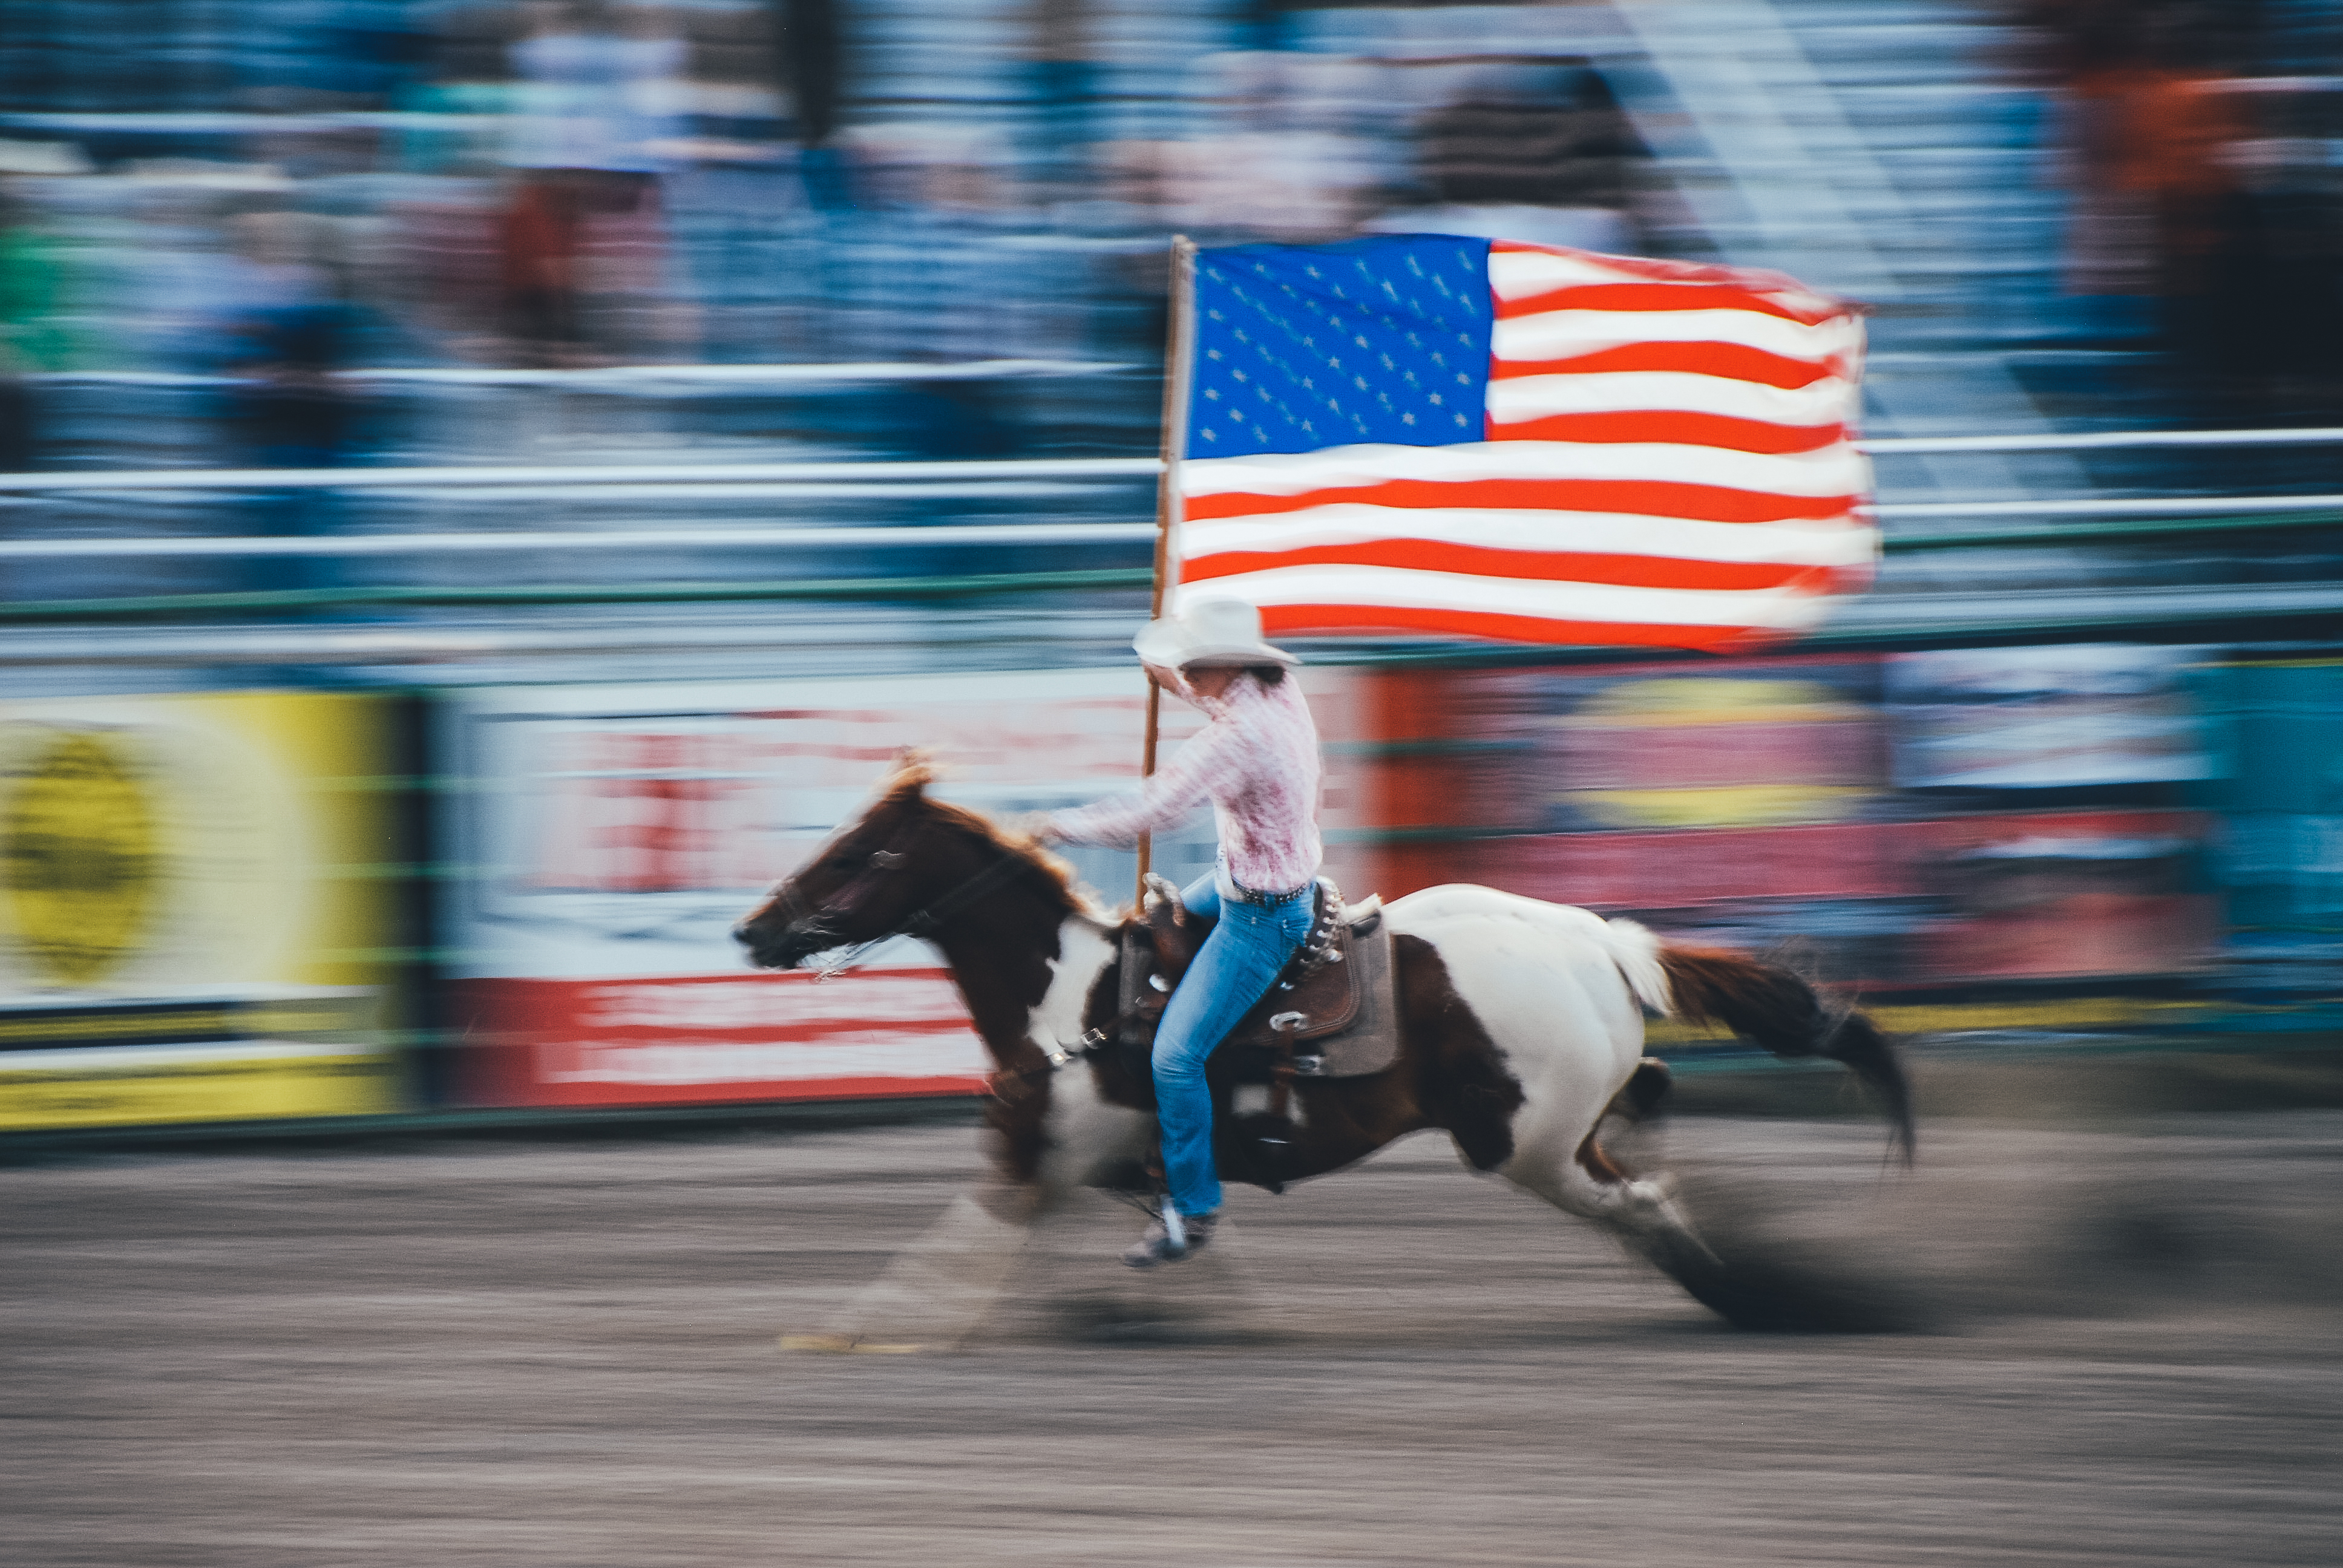 Image utilizing slow shutter speed and panning of a cowboy on a horse with an american flag